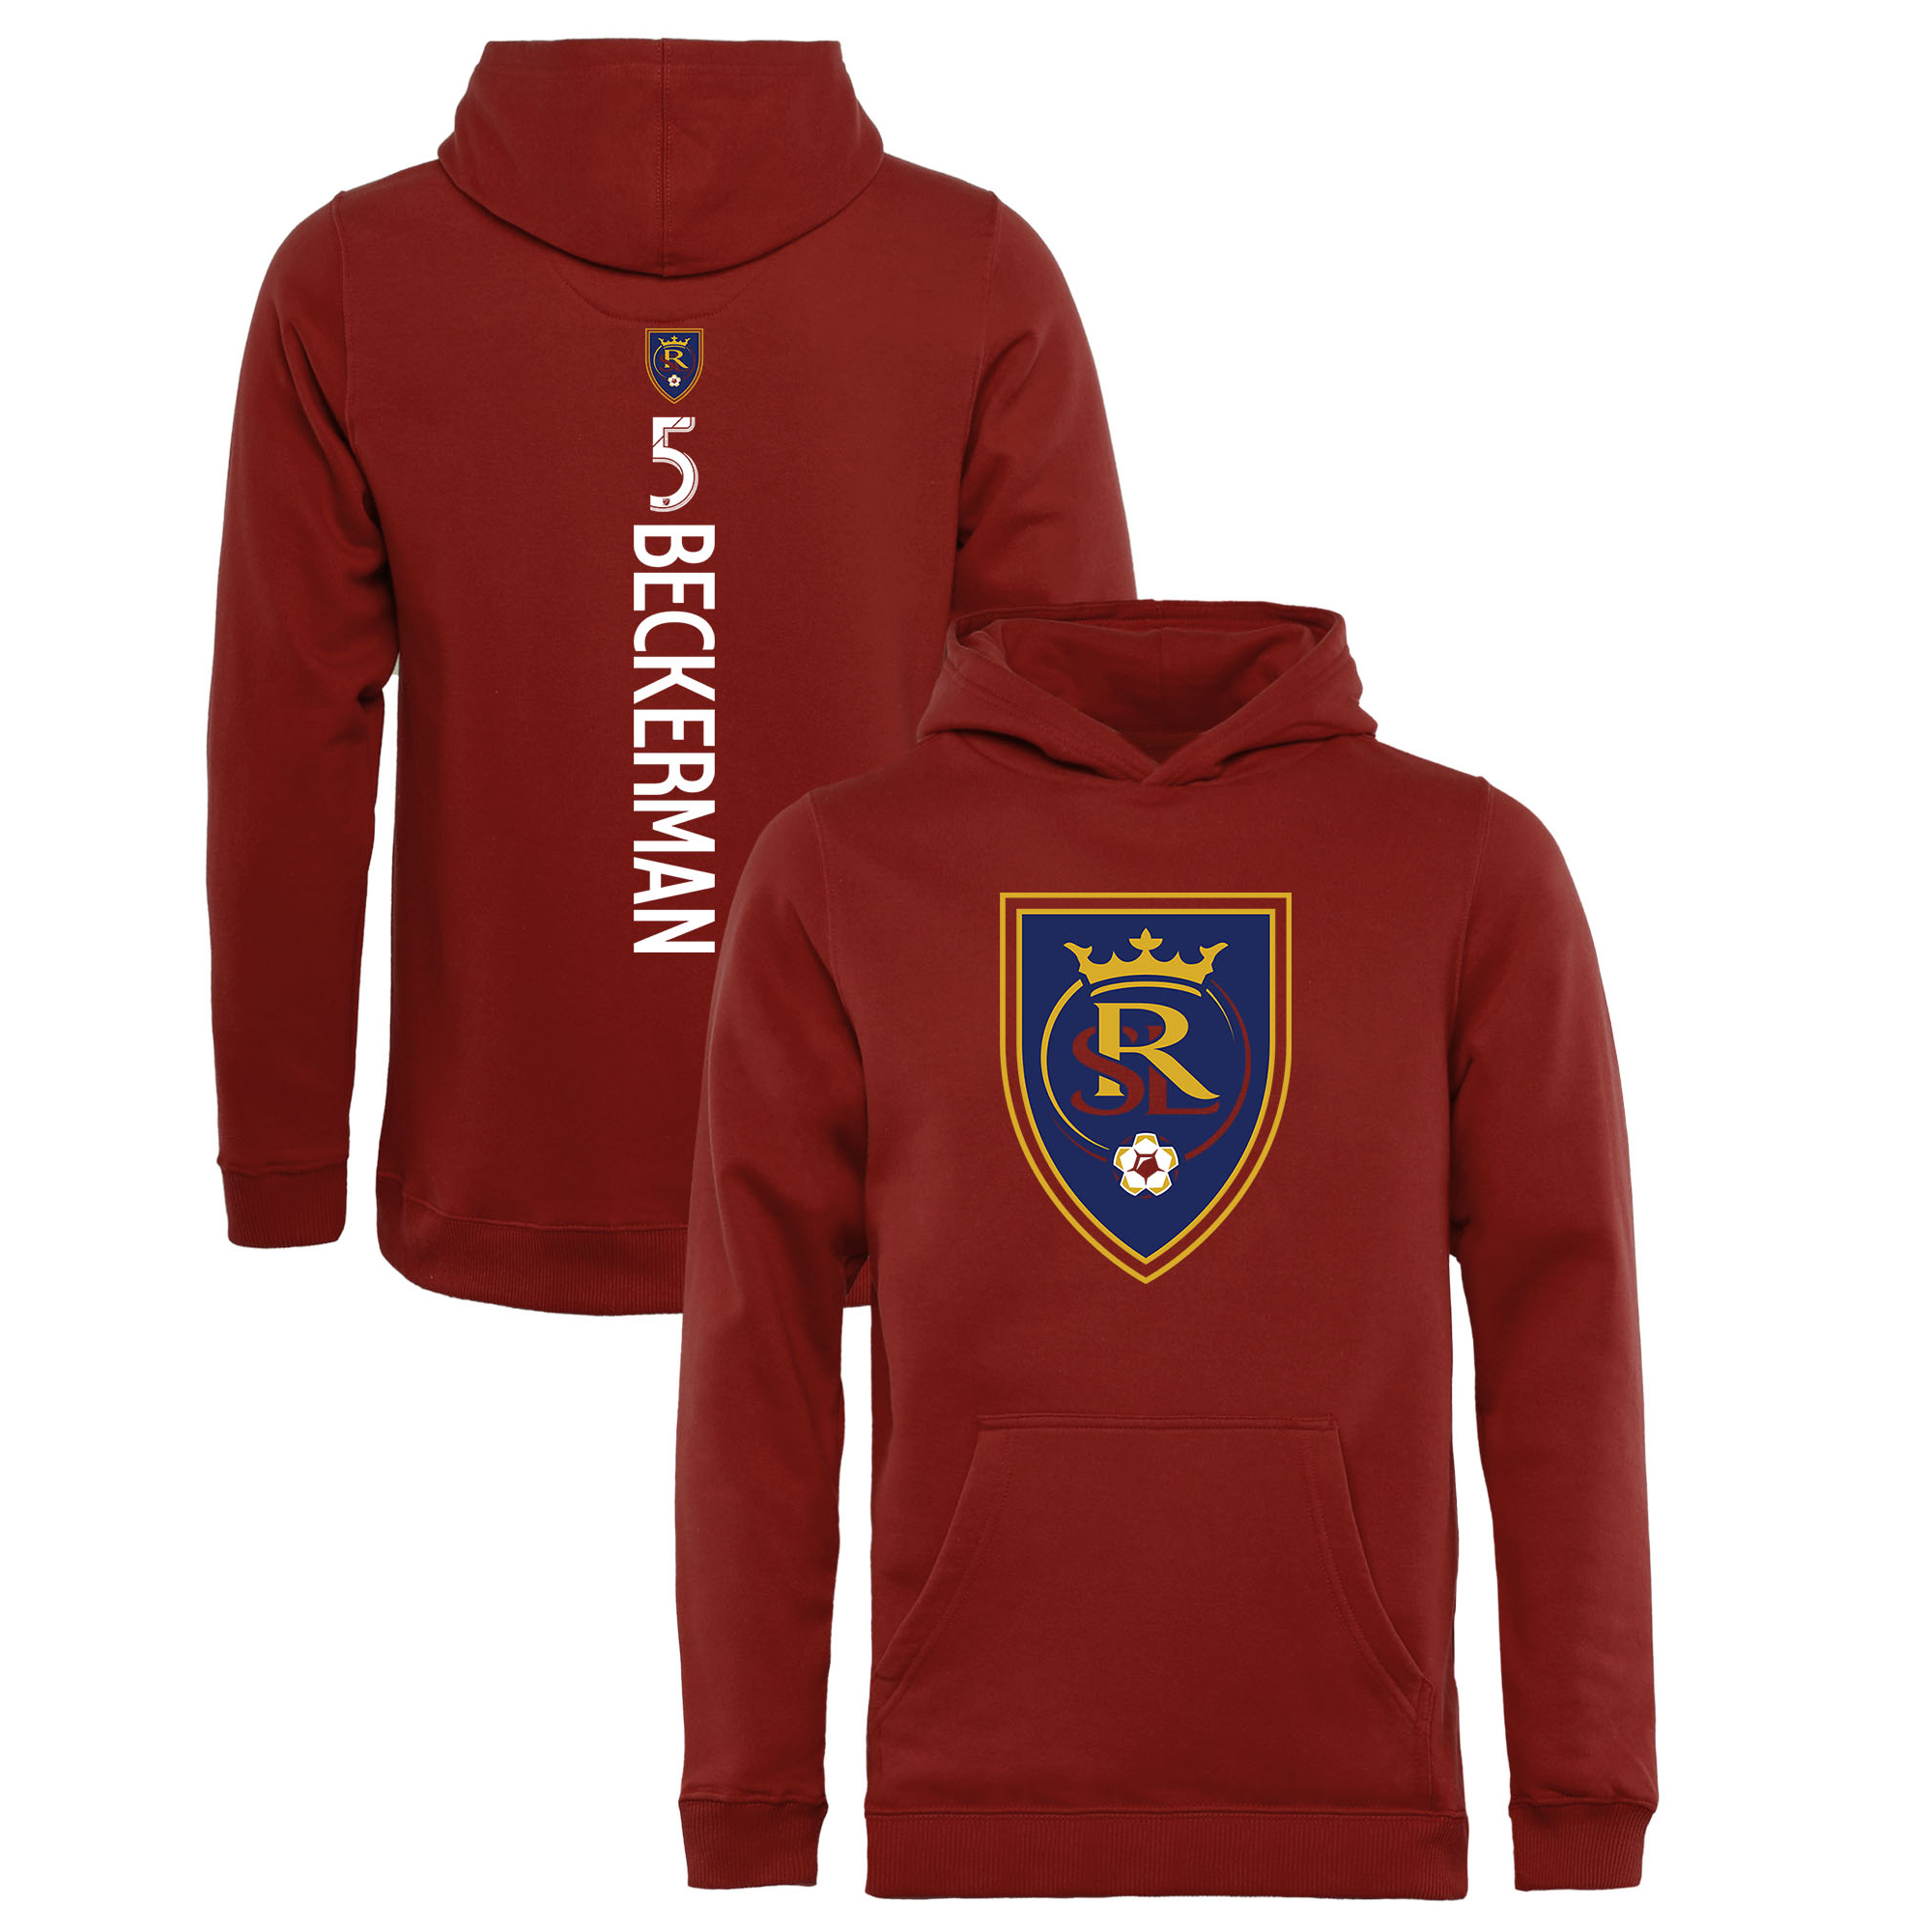 Kyle Beckerman Real Salt Lake Fanatics Branded Youth Backer Name & Number Pullover Hoodie - Red